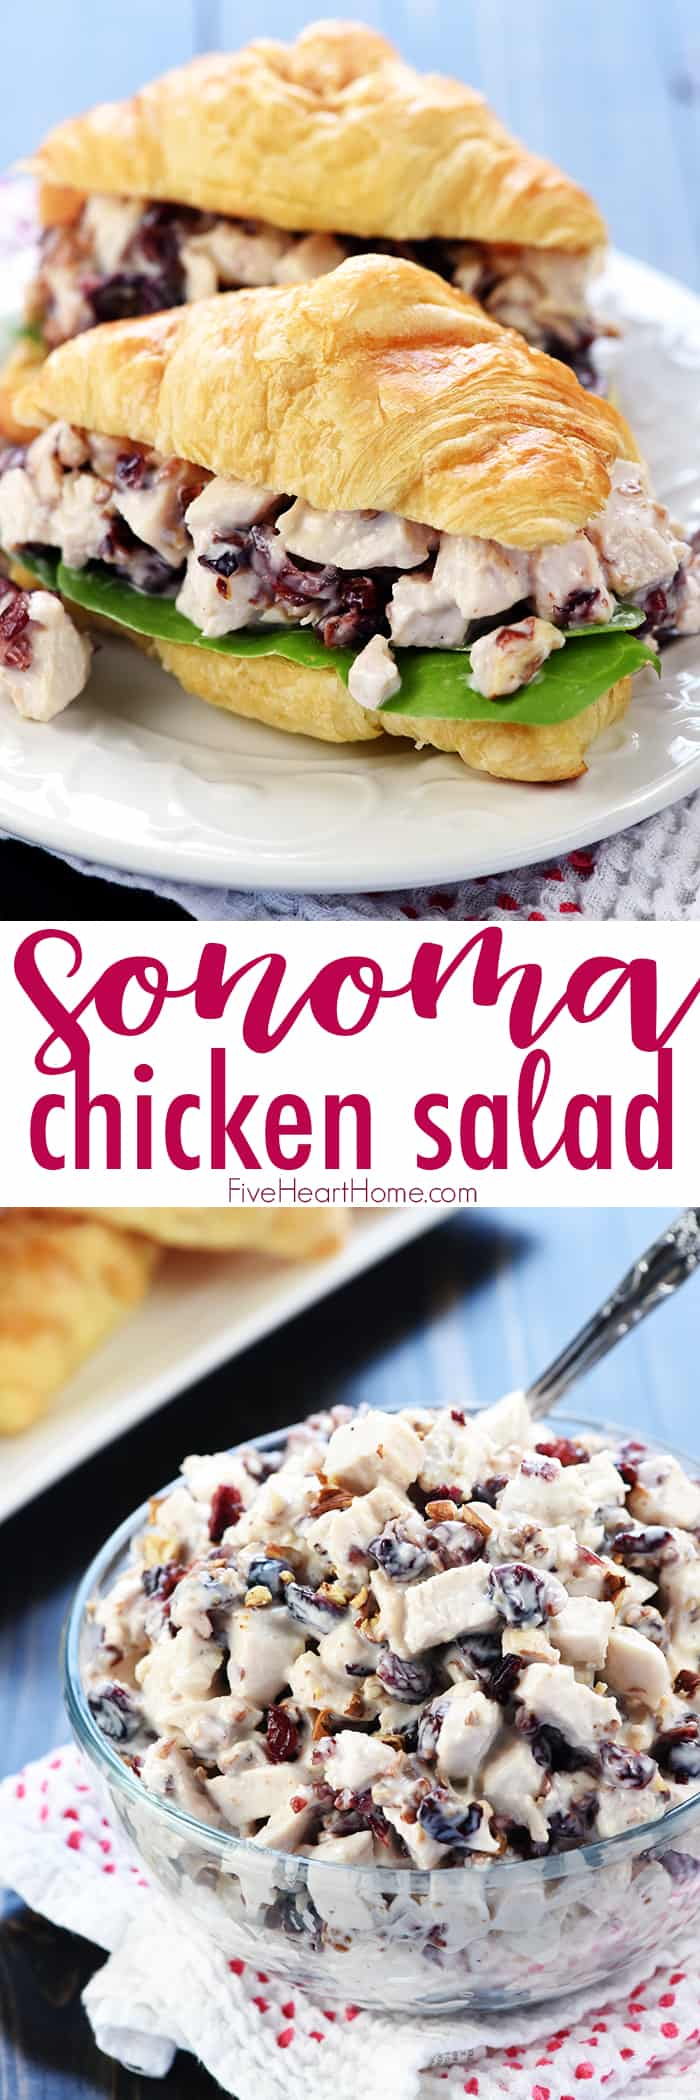 Sonoma Chicken Salad ~ studded with toasted pecans and dried cranberries in a lightened-up dressing including Greek yogurt & honey, this recipe makes scrumptious sandwiches for lunch, dinner, picnics, parties, or bridal and baby showers! | Five Heart Home.com